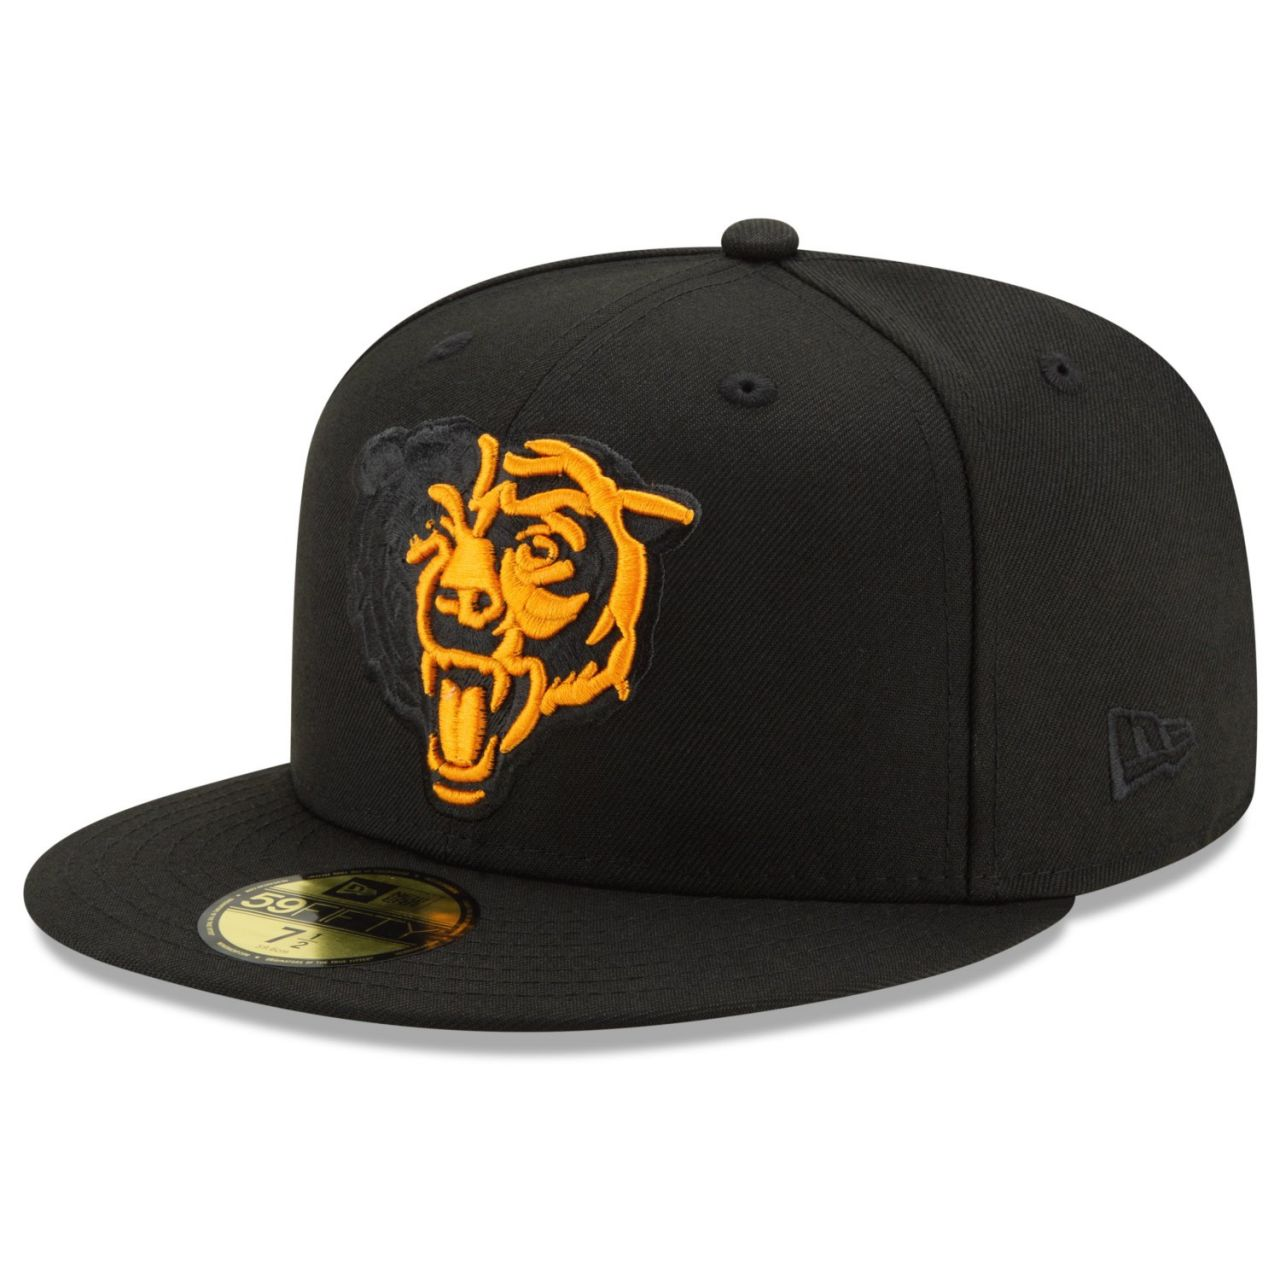 amfoo - New Era 59Fifty Fitted Cap - ELEMENTS Chicago Bears